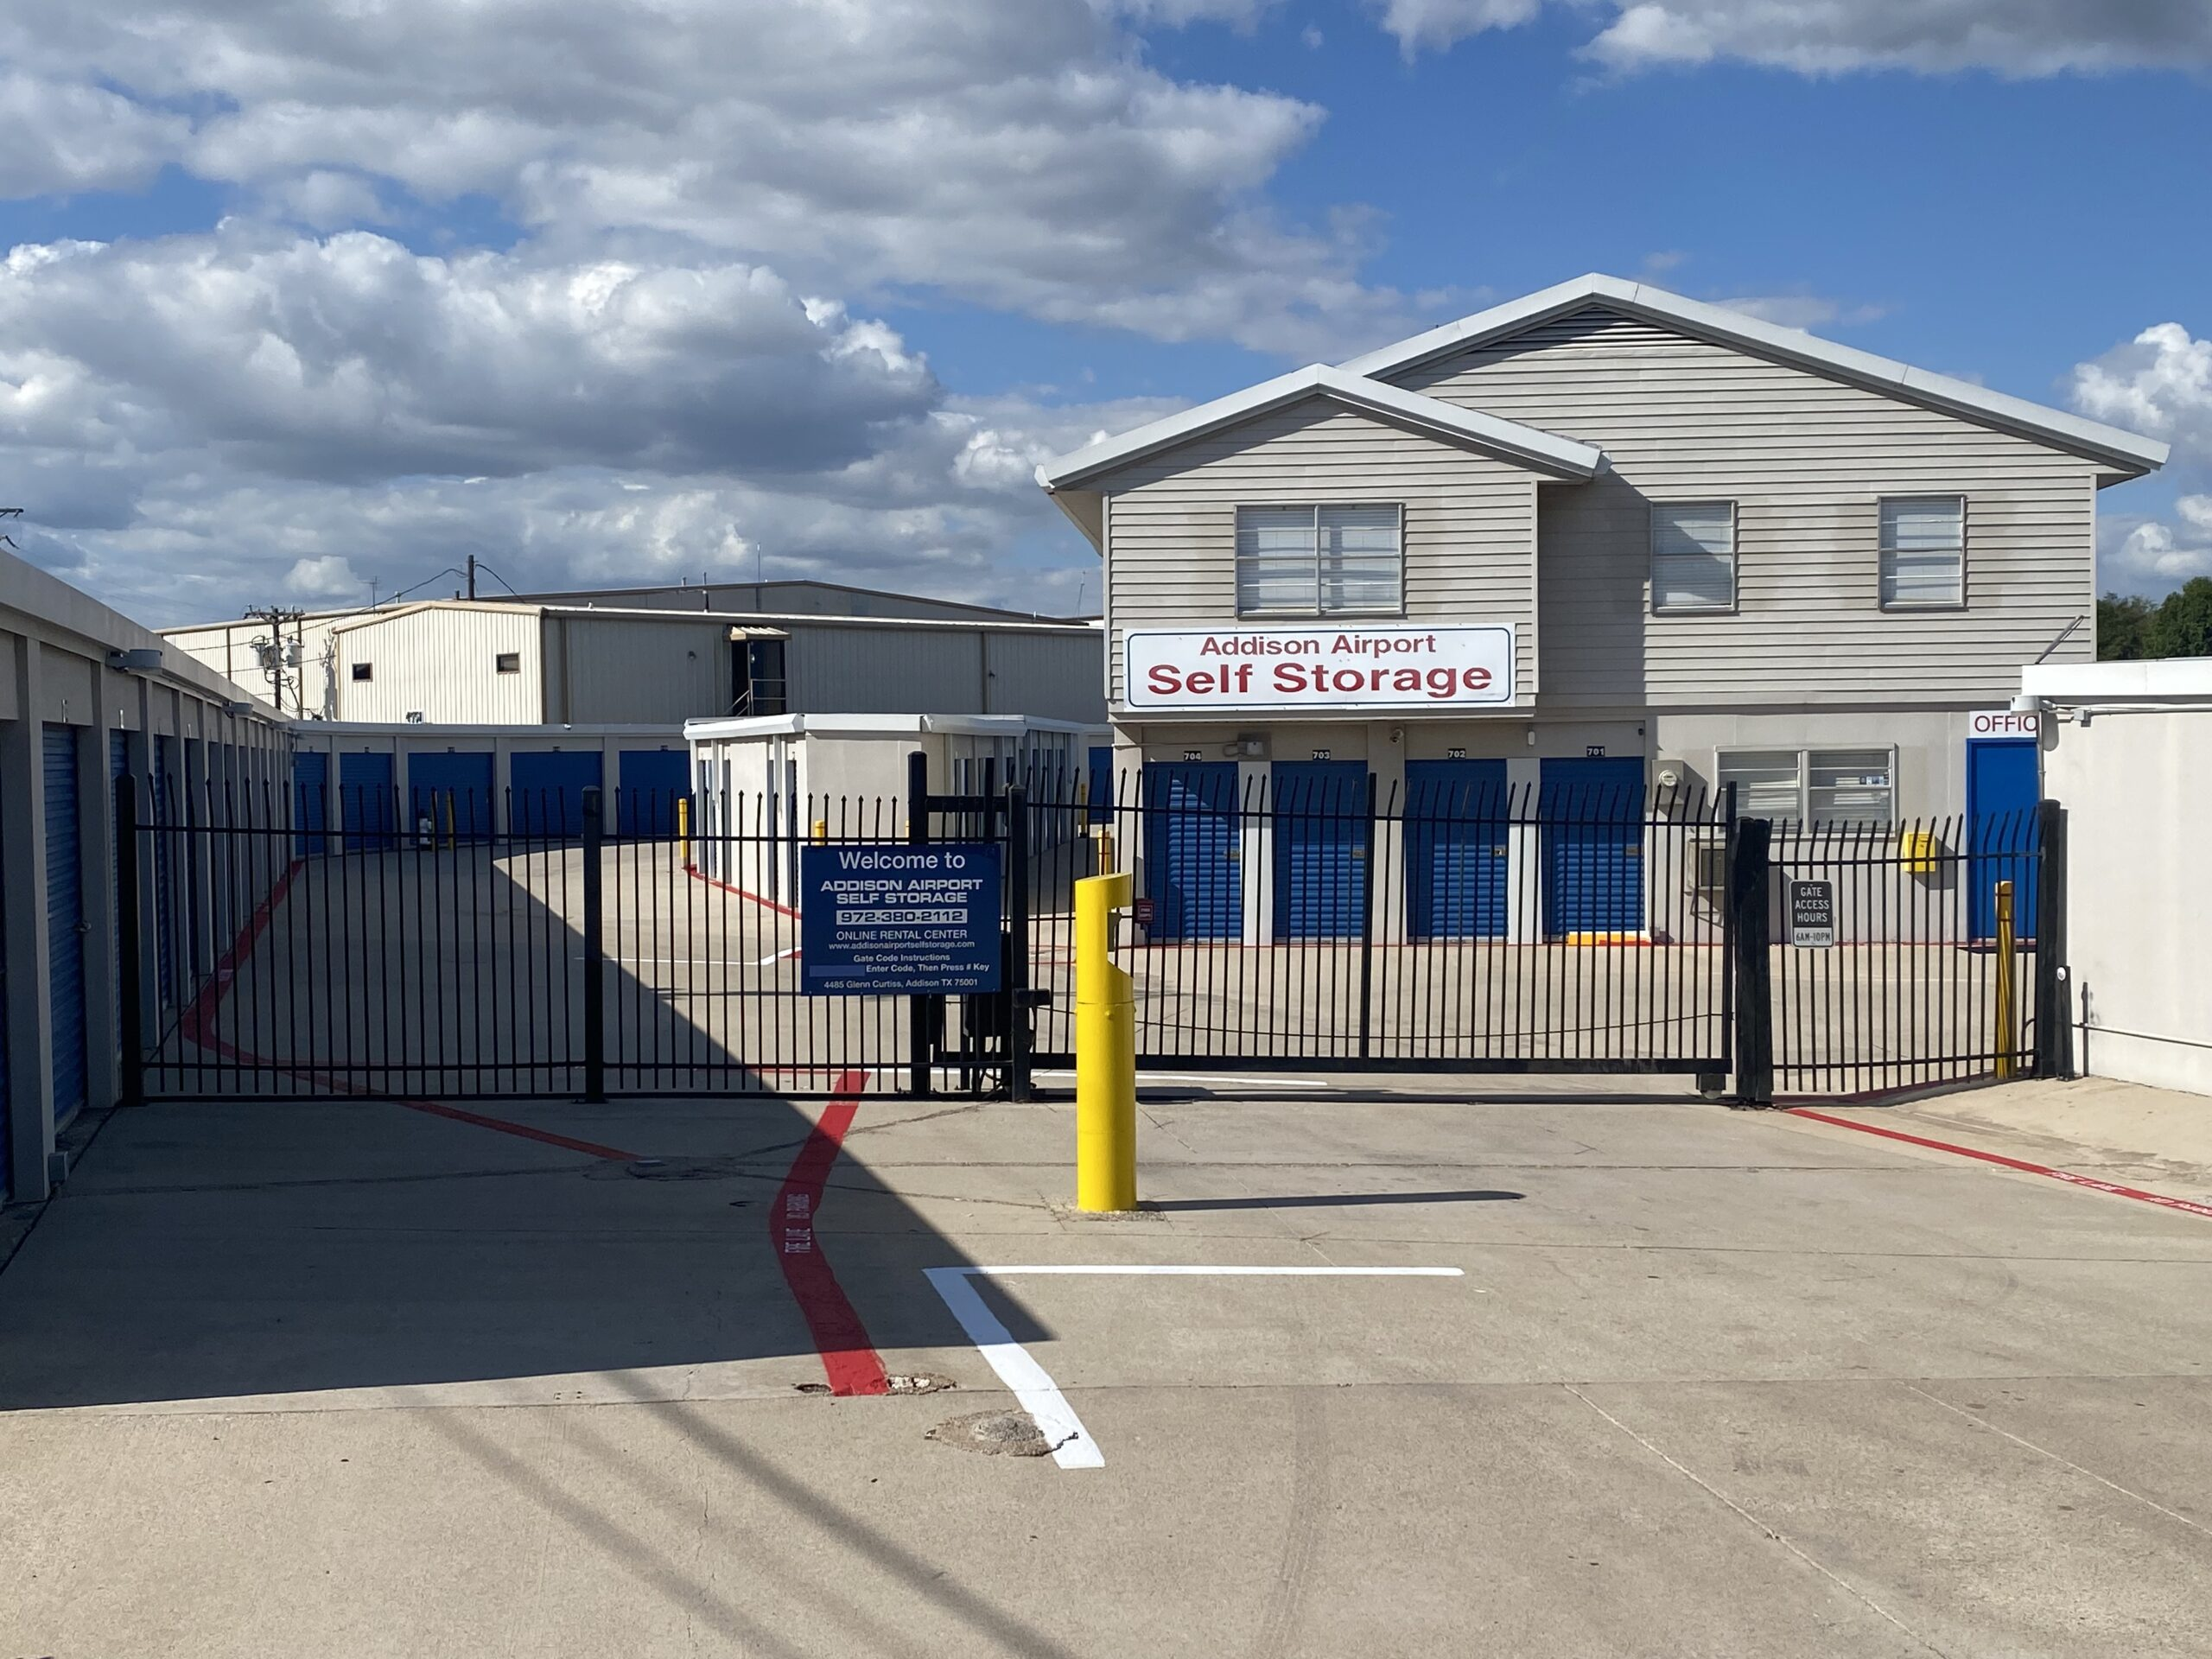 Addison Airport Self Storage - Self Storage Facility For Sale by The Karr Self Storage Team in Texas